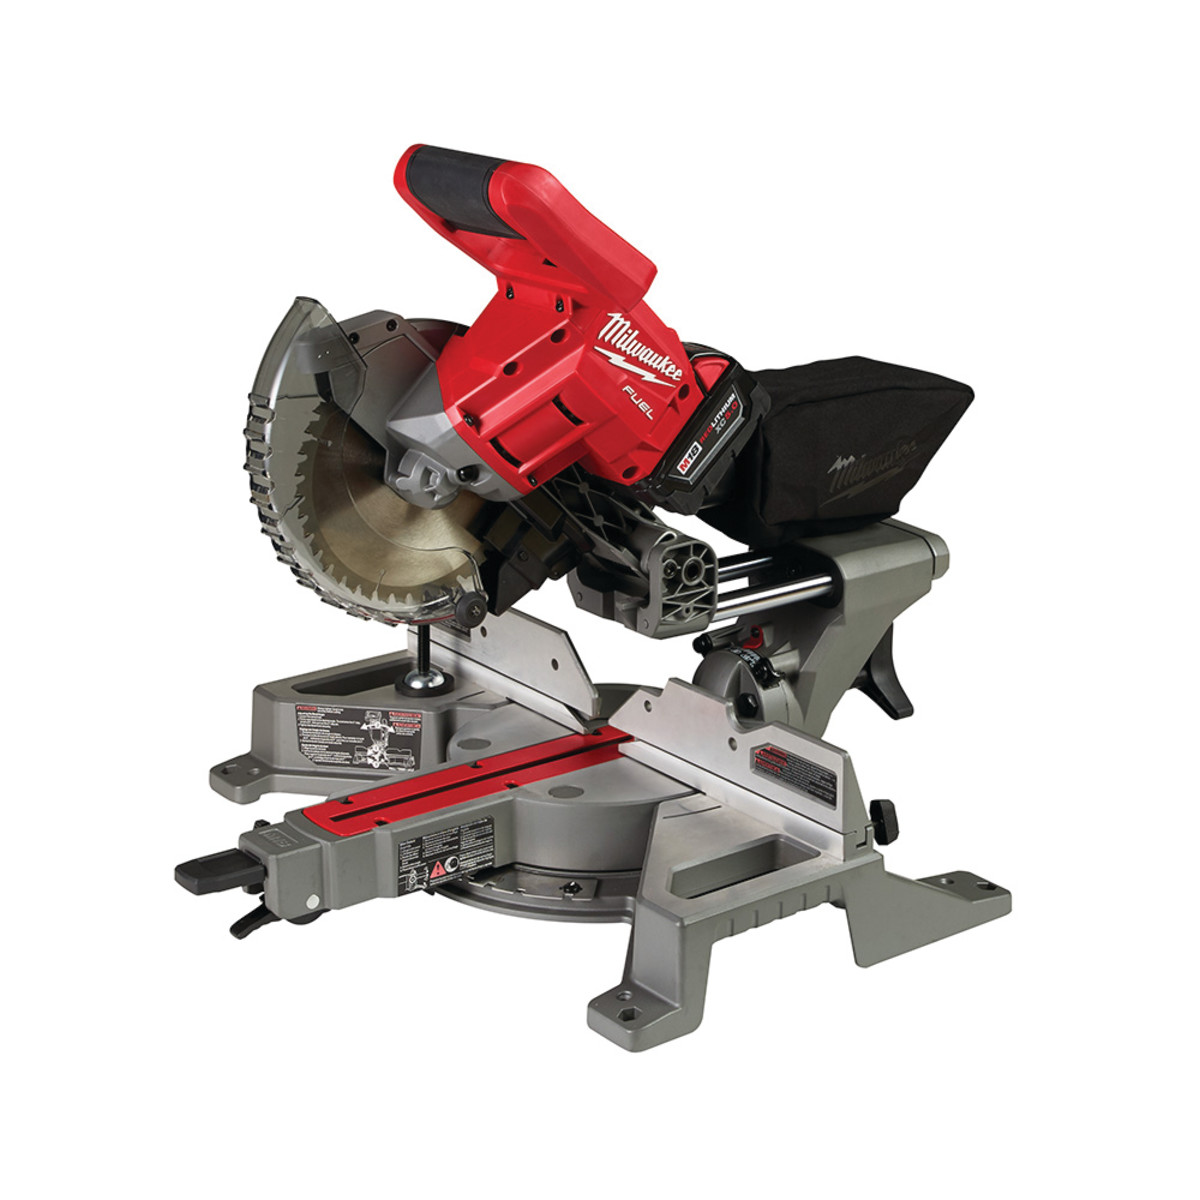 New cordless 7 14 dual bevel sliding miter saw from milwaukee tool milwaukee tool offers a new cordless 7 14 dual bevel sliding miter saw the saw weighs 28 lbs with the batter installed and is the only 7 14 solution greentooth Images